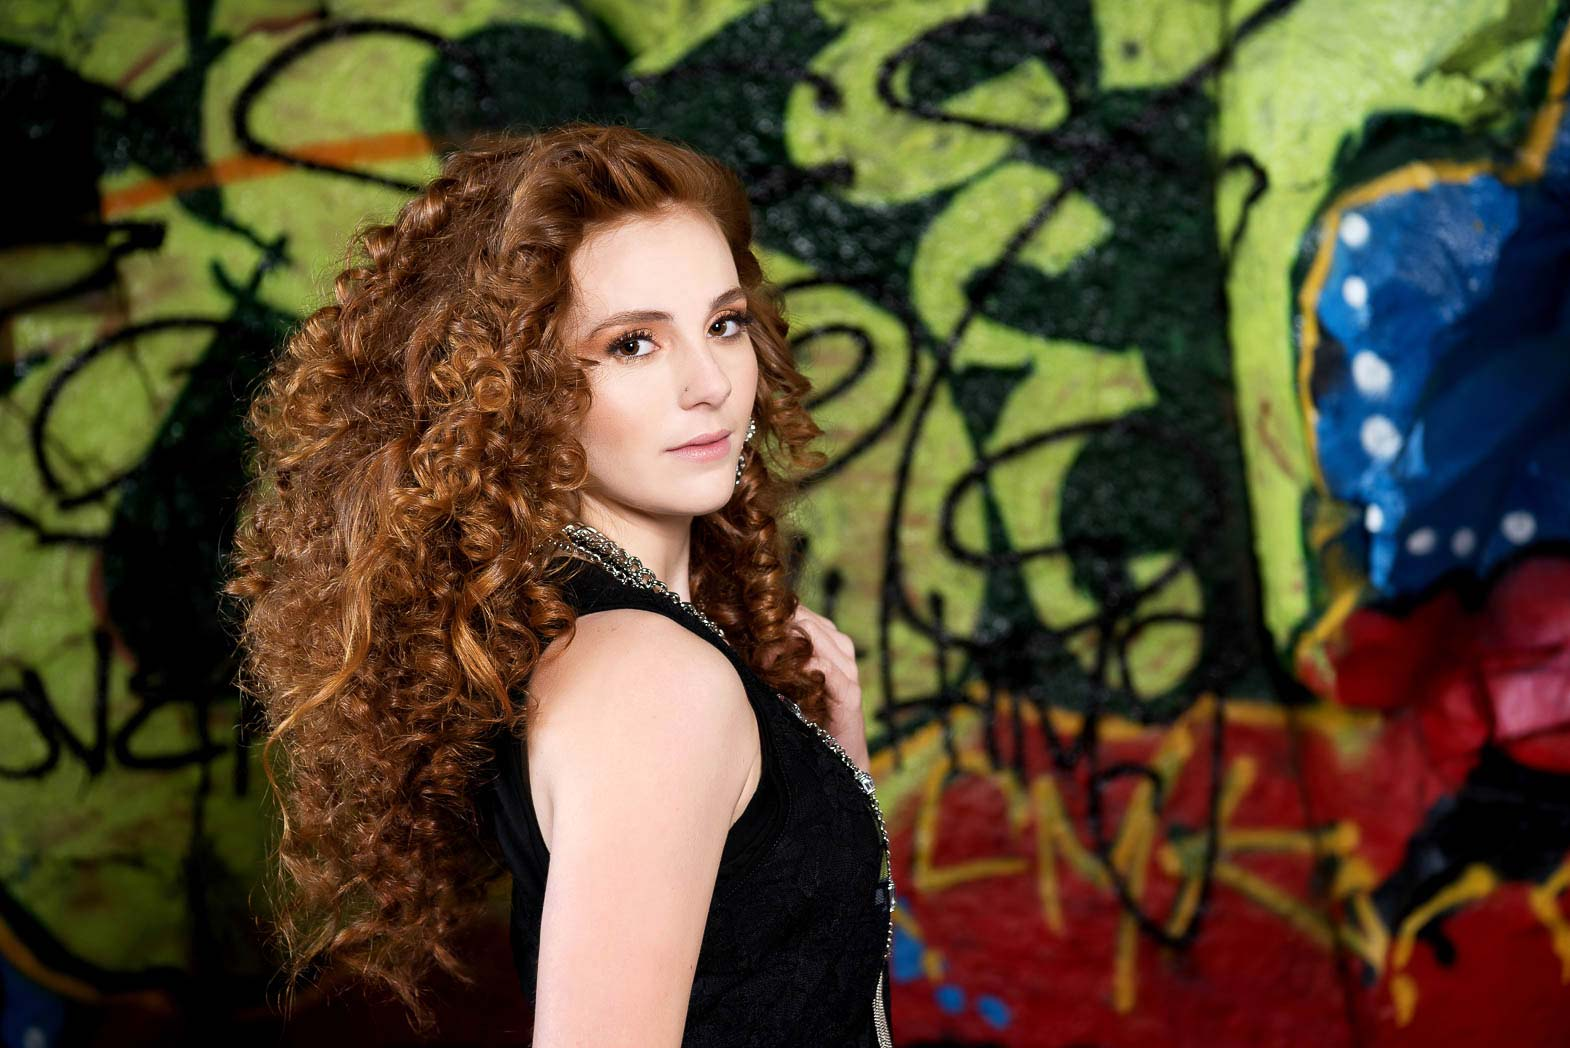 red haired senior model standing in front of graffiti looking over her shoulder